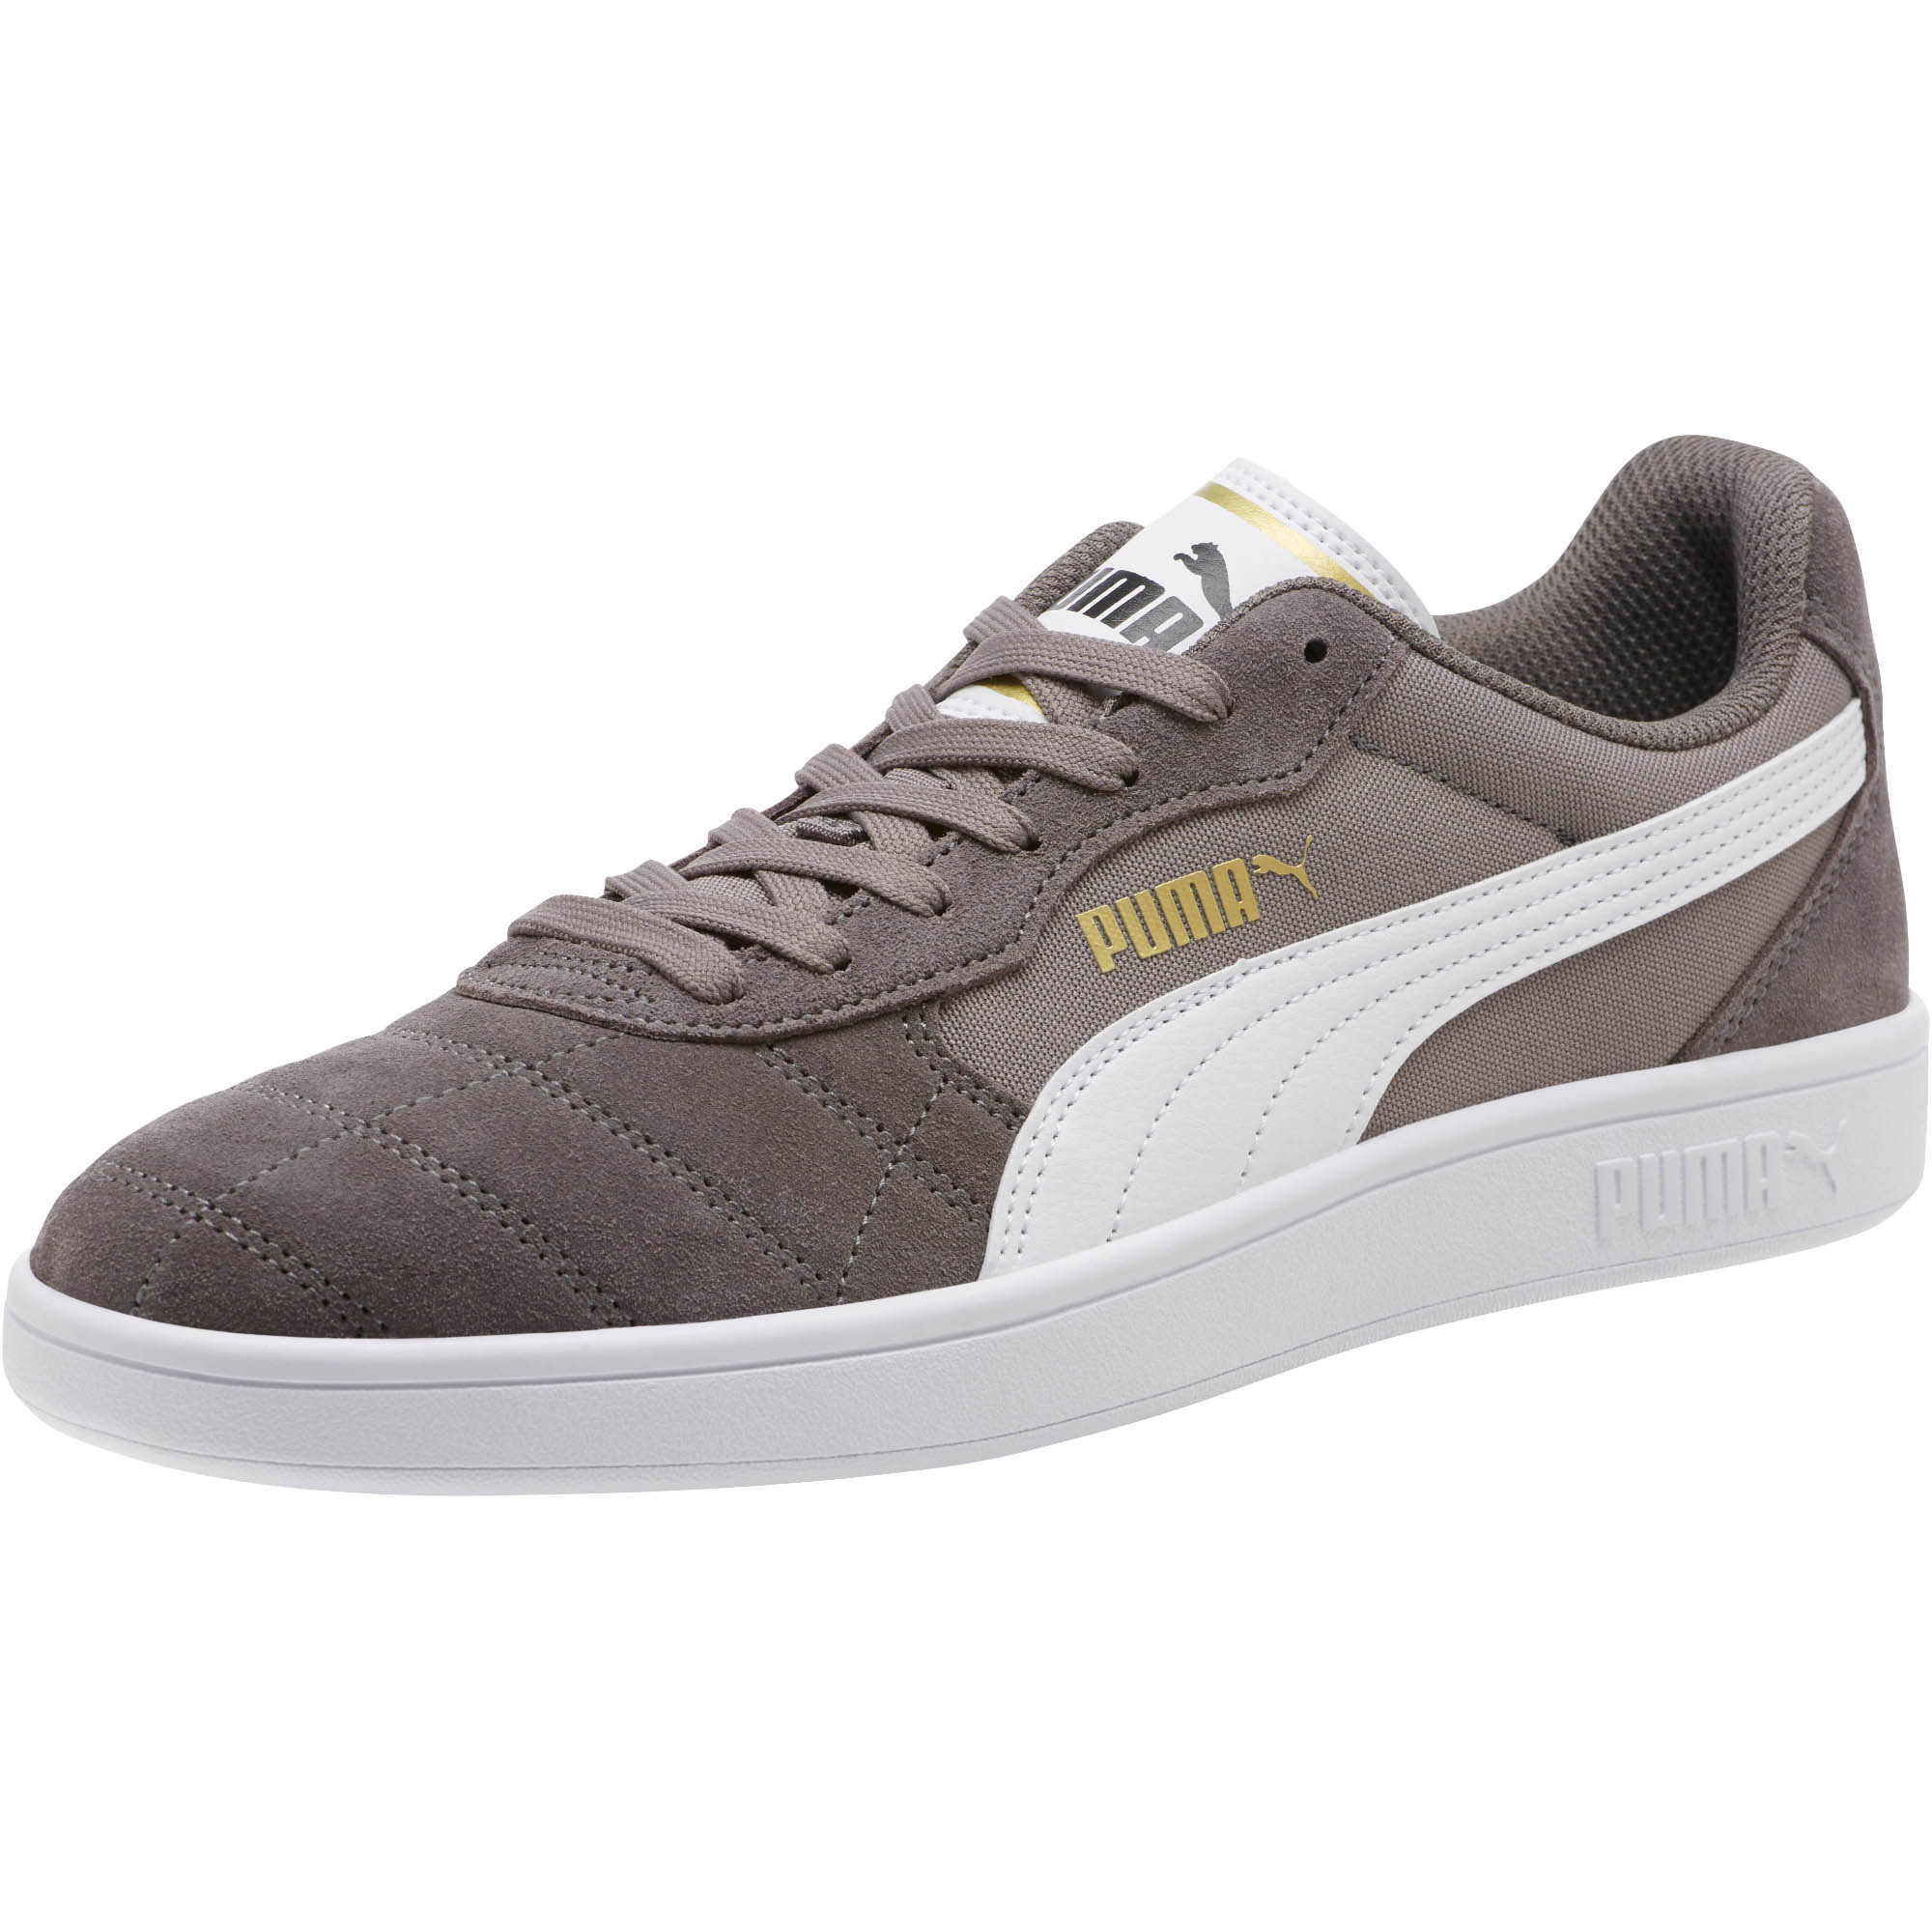 PUMA-Astro-Kick-Men-039-s-Sneakers-Men-Shoe-Basics thumbnail 10